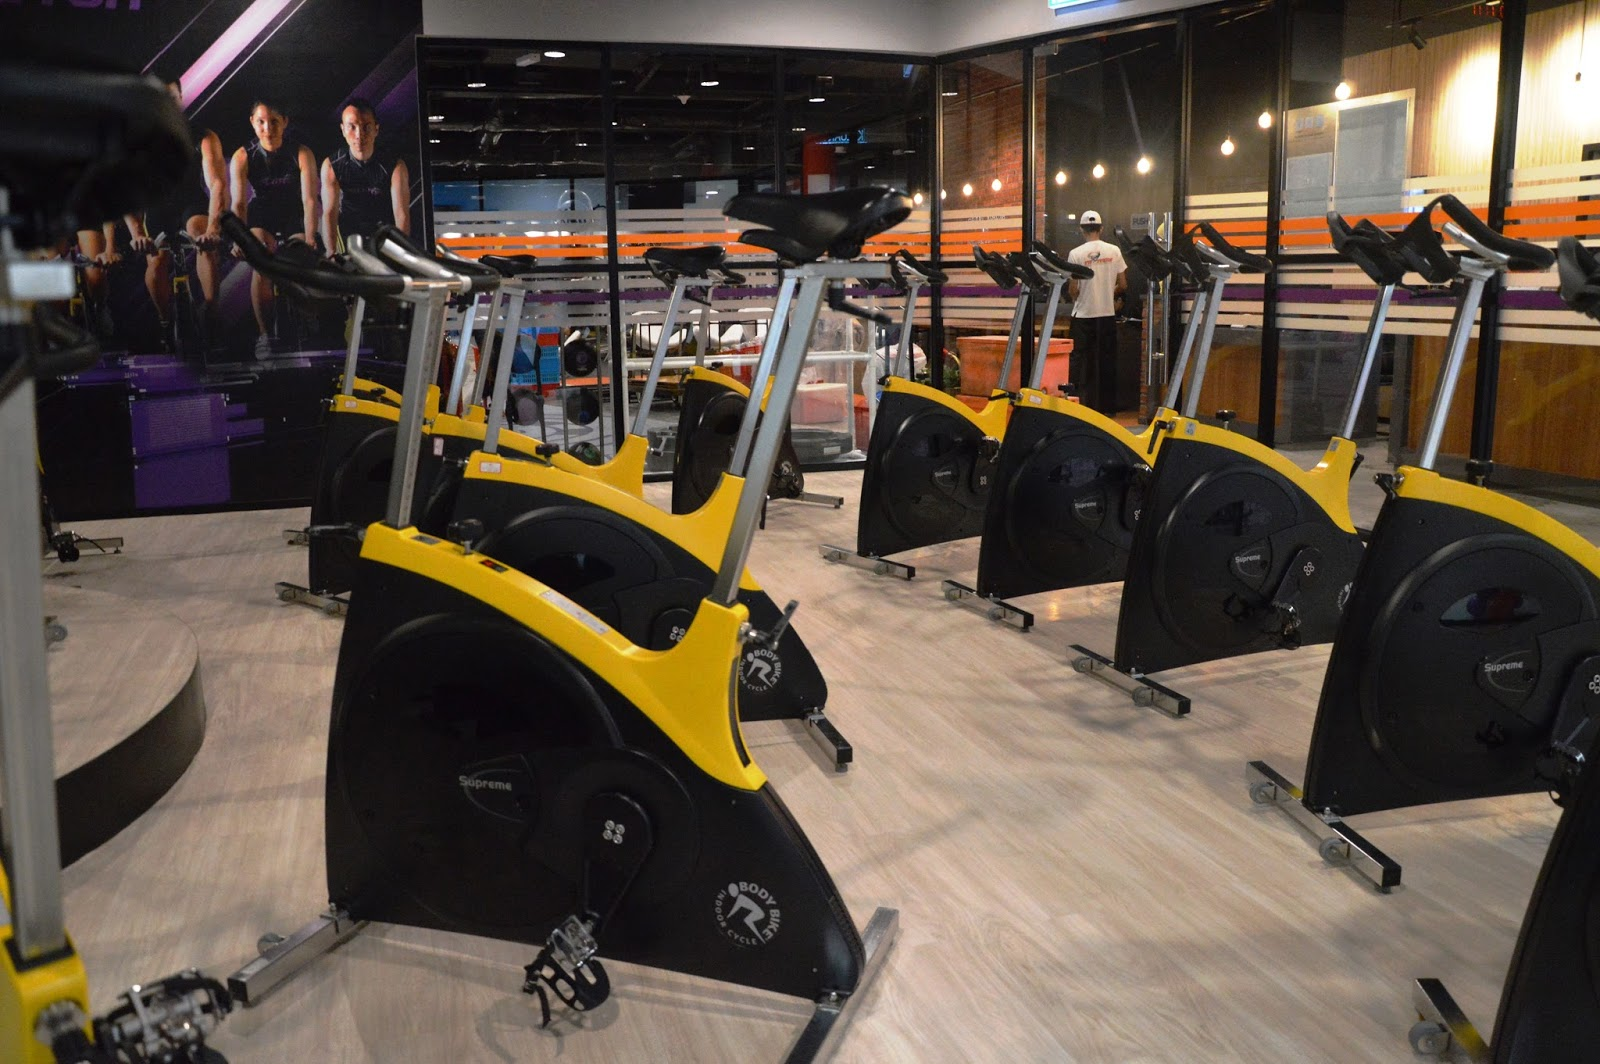 Malaysian Lifestyle Blog Celebrity Fitness S 20th Club In Malaysia Launched Quill City Mall